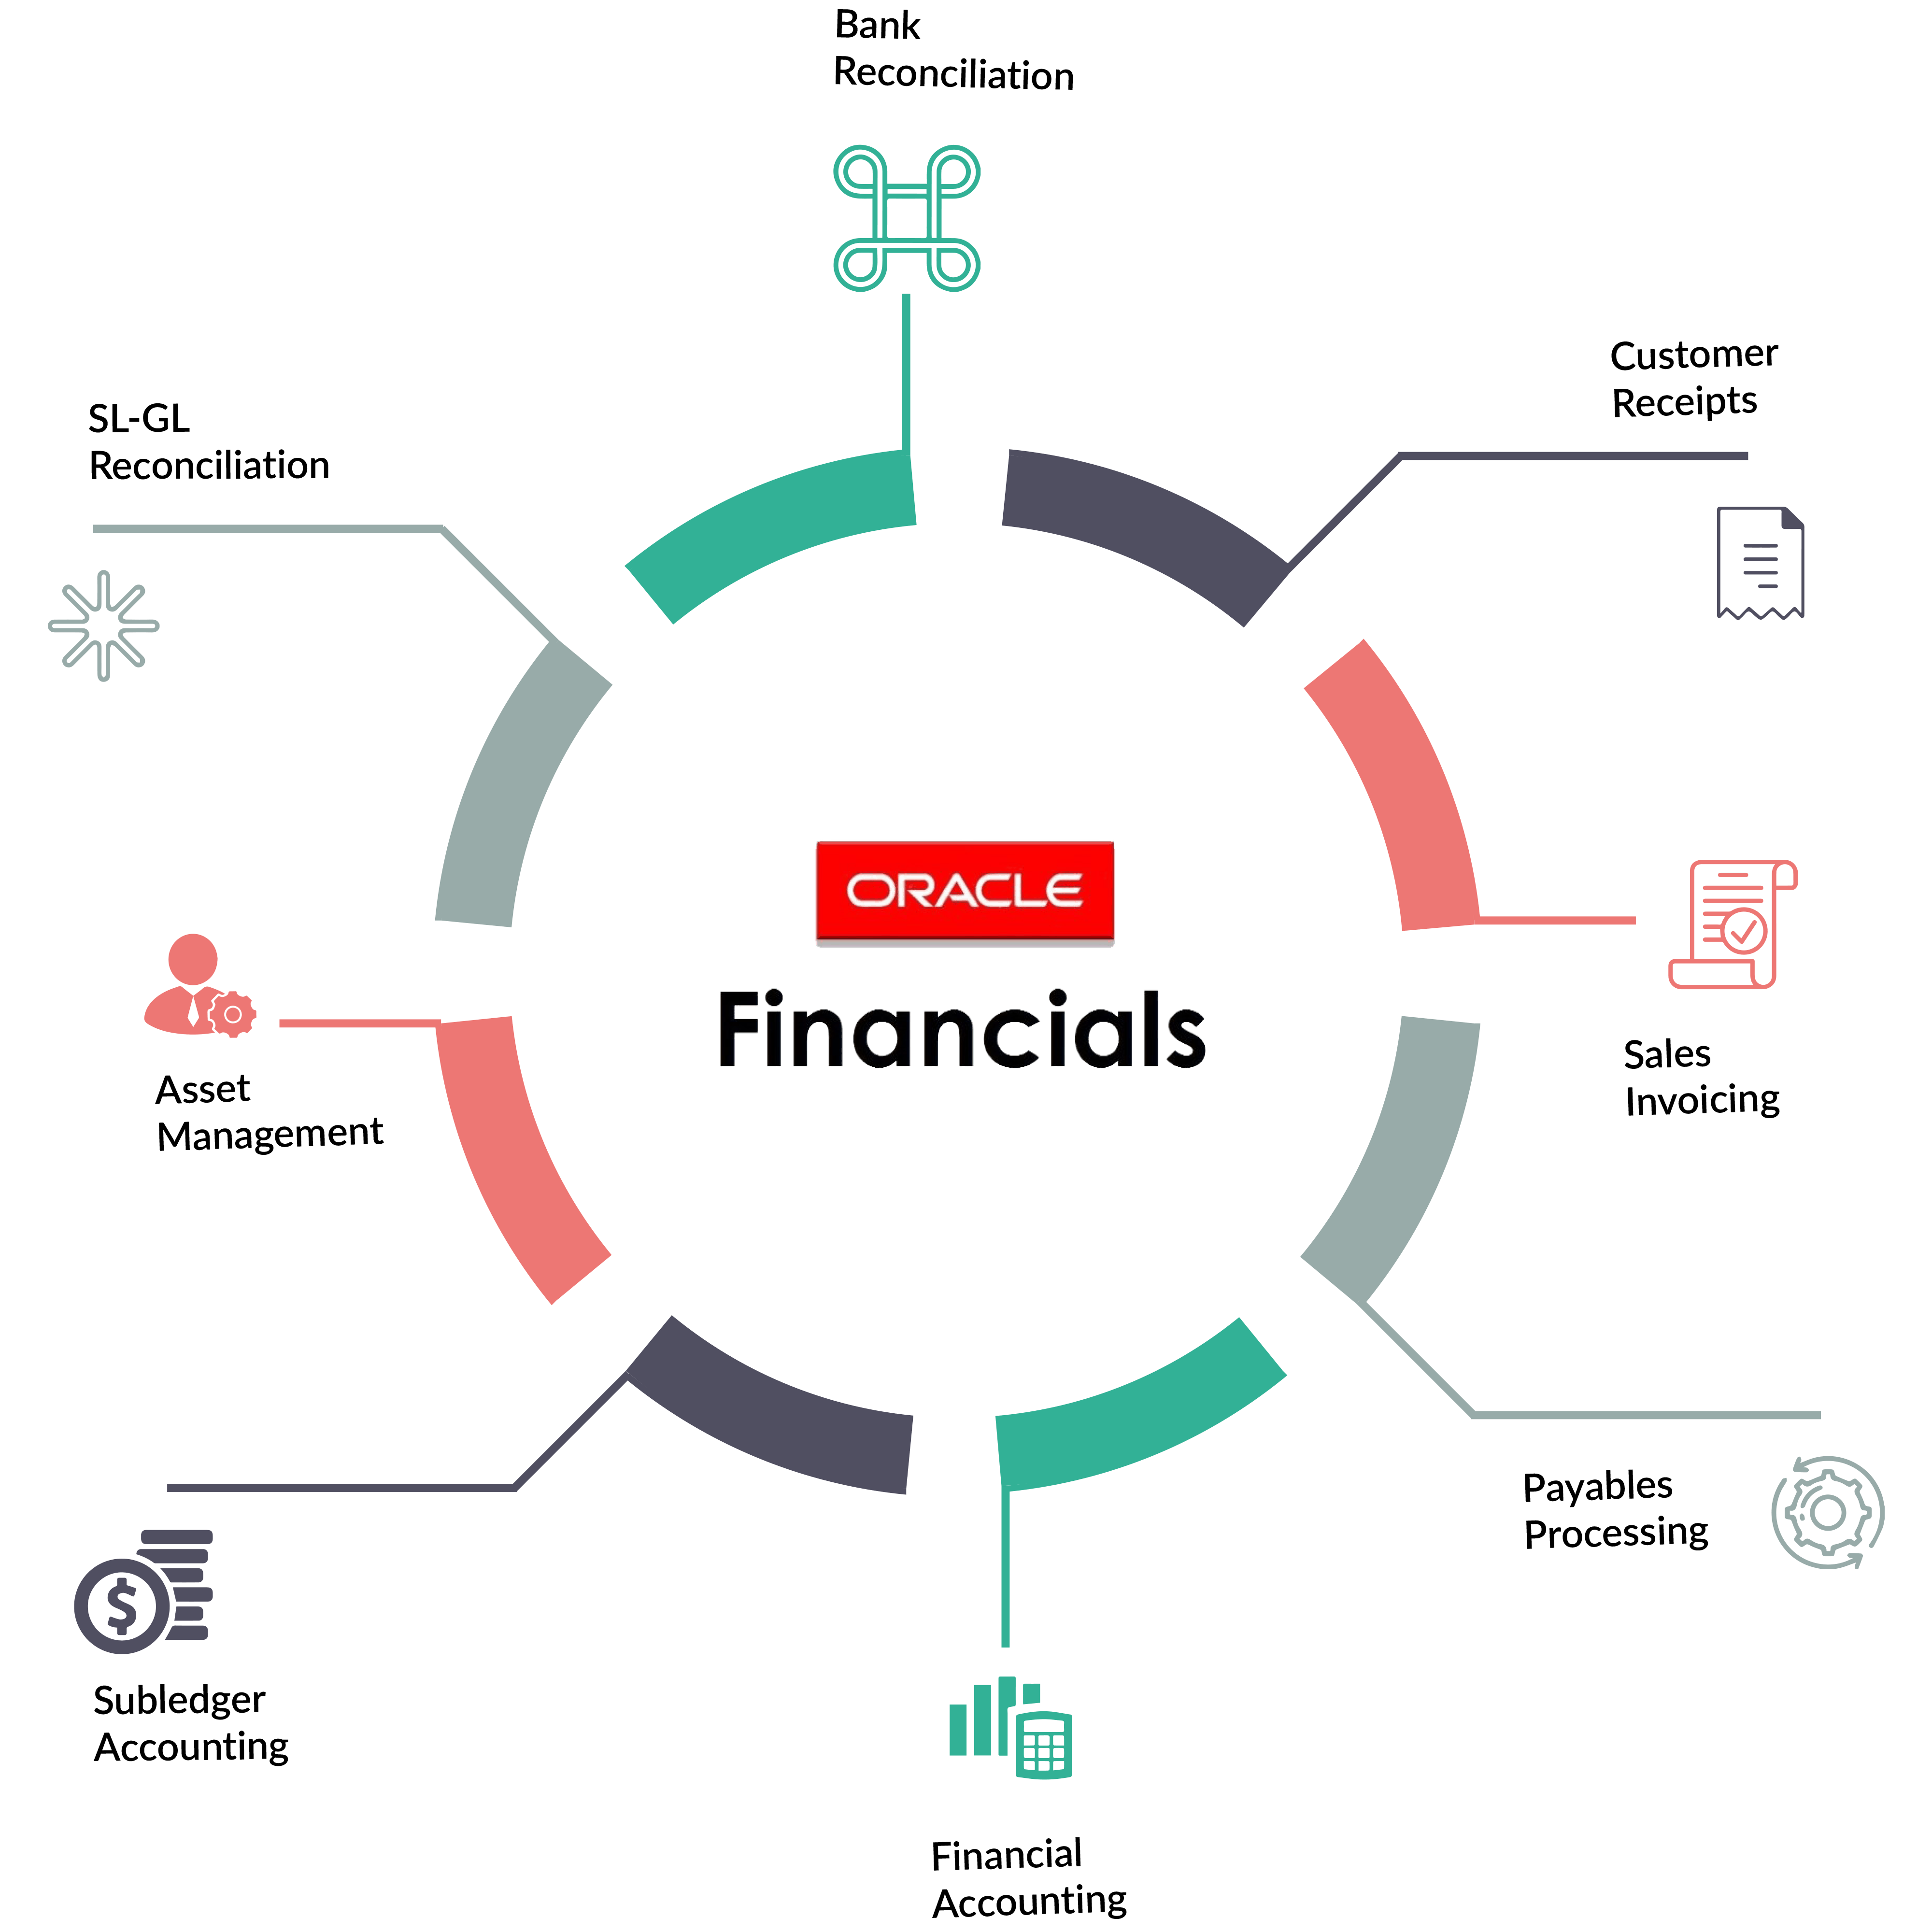 Financial Functional Product Image